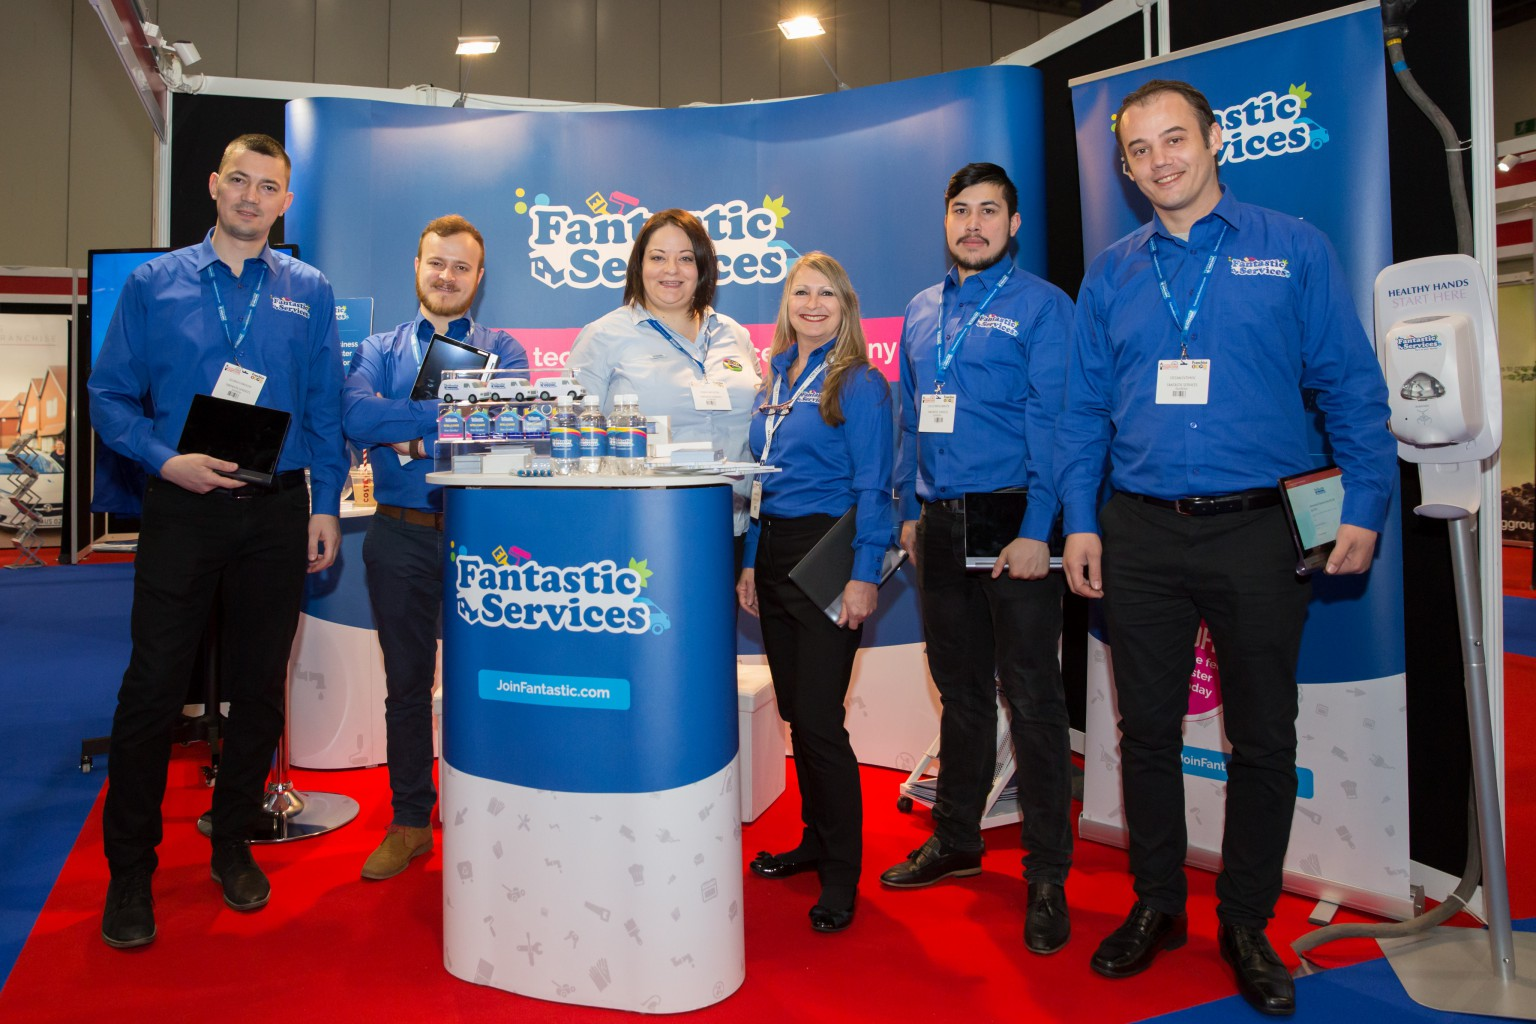 Fantastic Services Show Stand